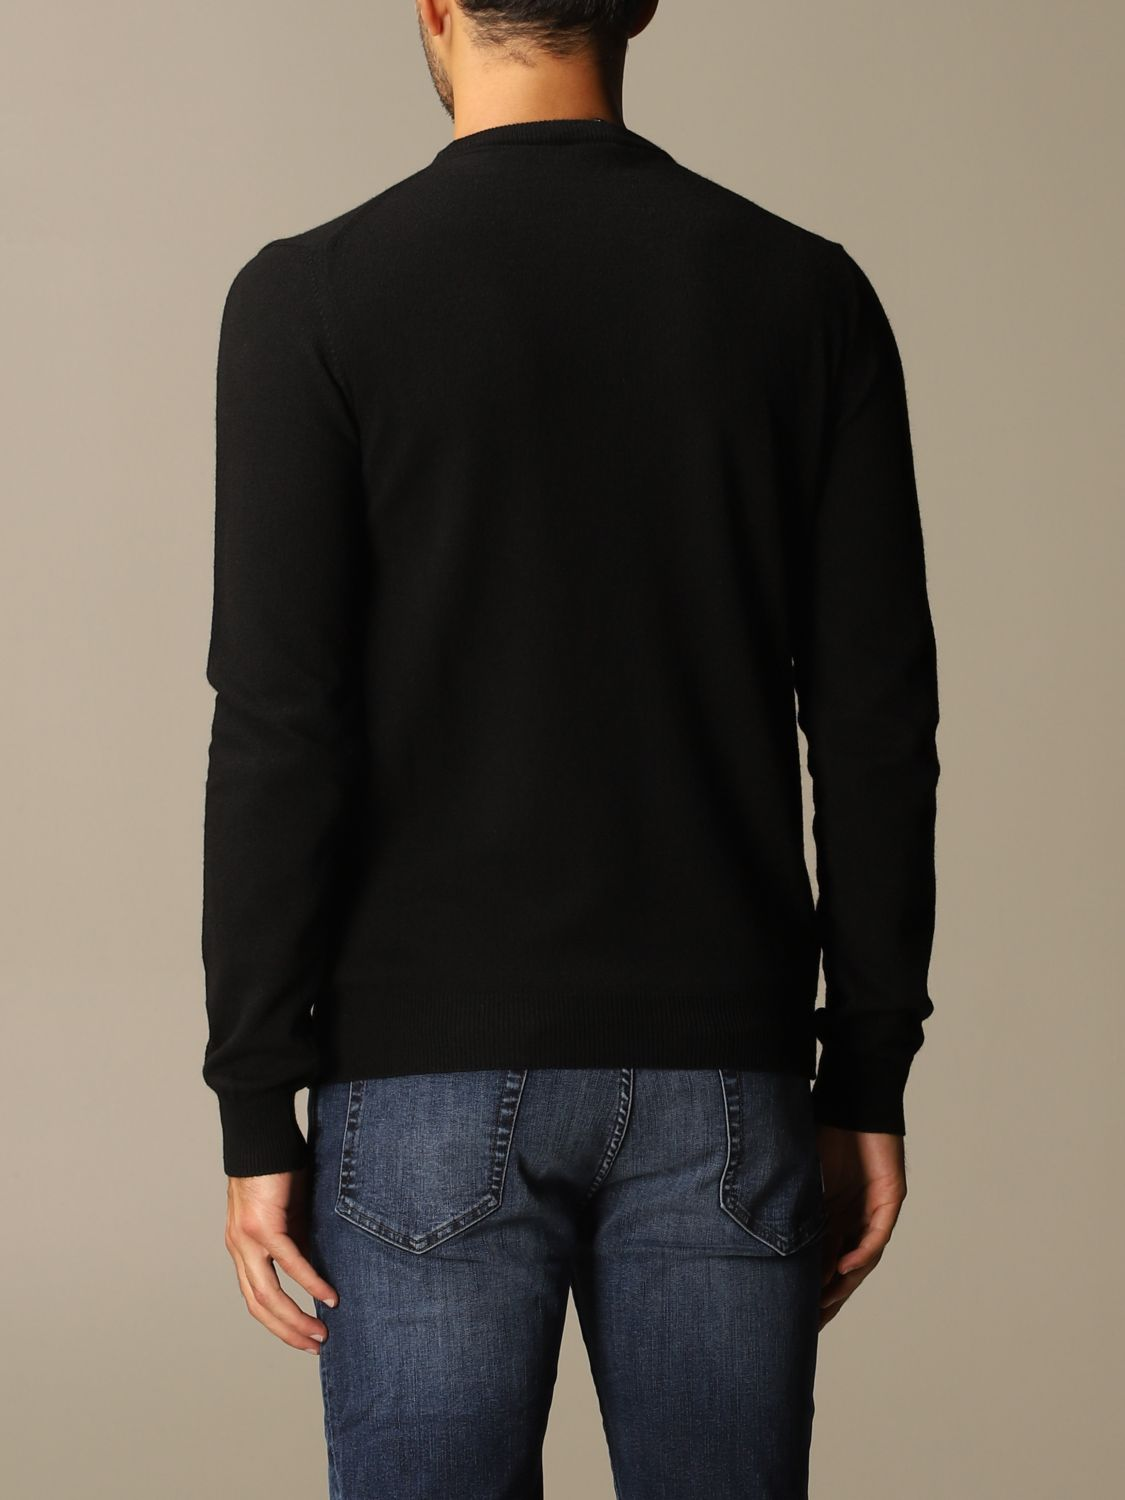 Sweater Colmar: Colmar crewneck sweater in wool and cashmere blend black 2